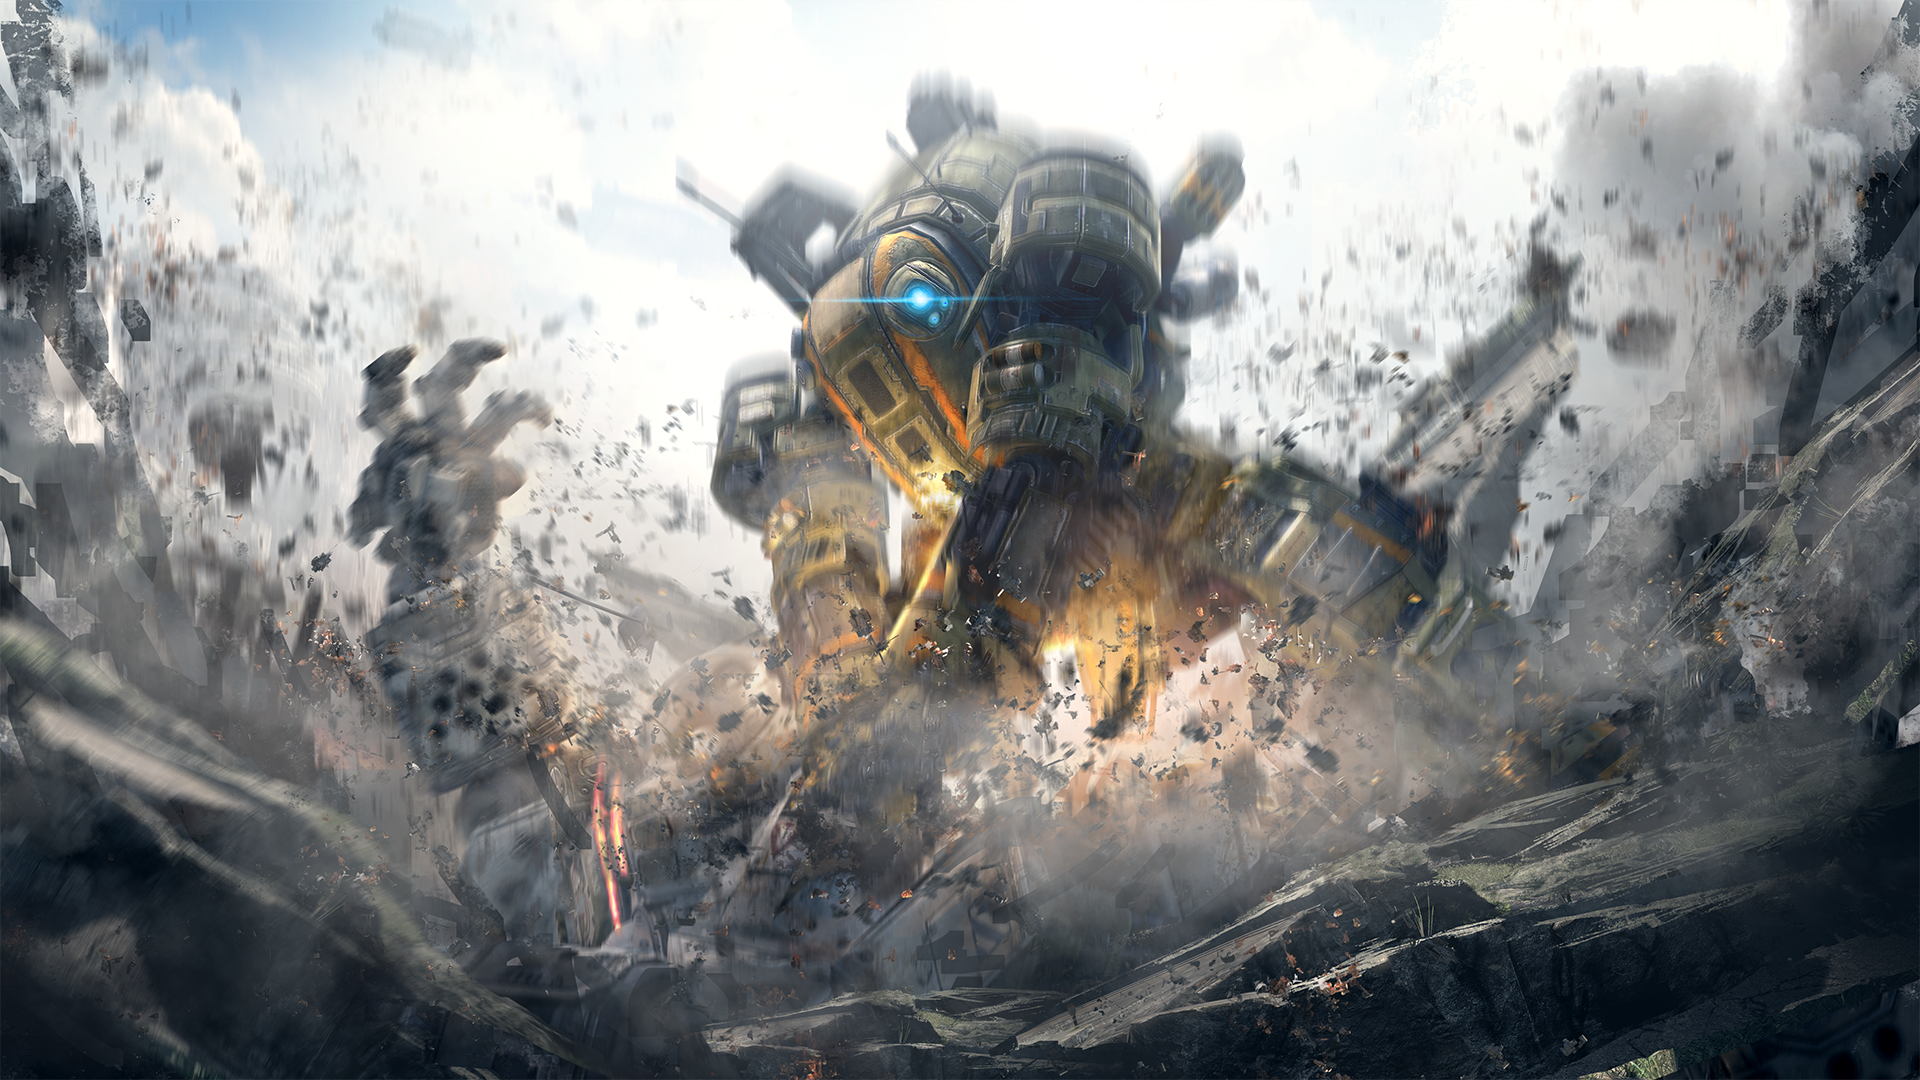 HD Quality Images of Titanfall – #39165438 1920x1080 px